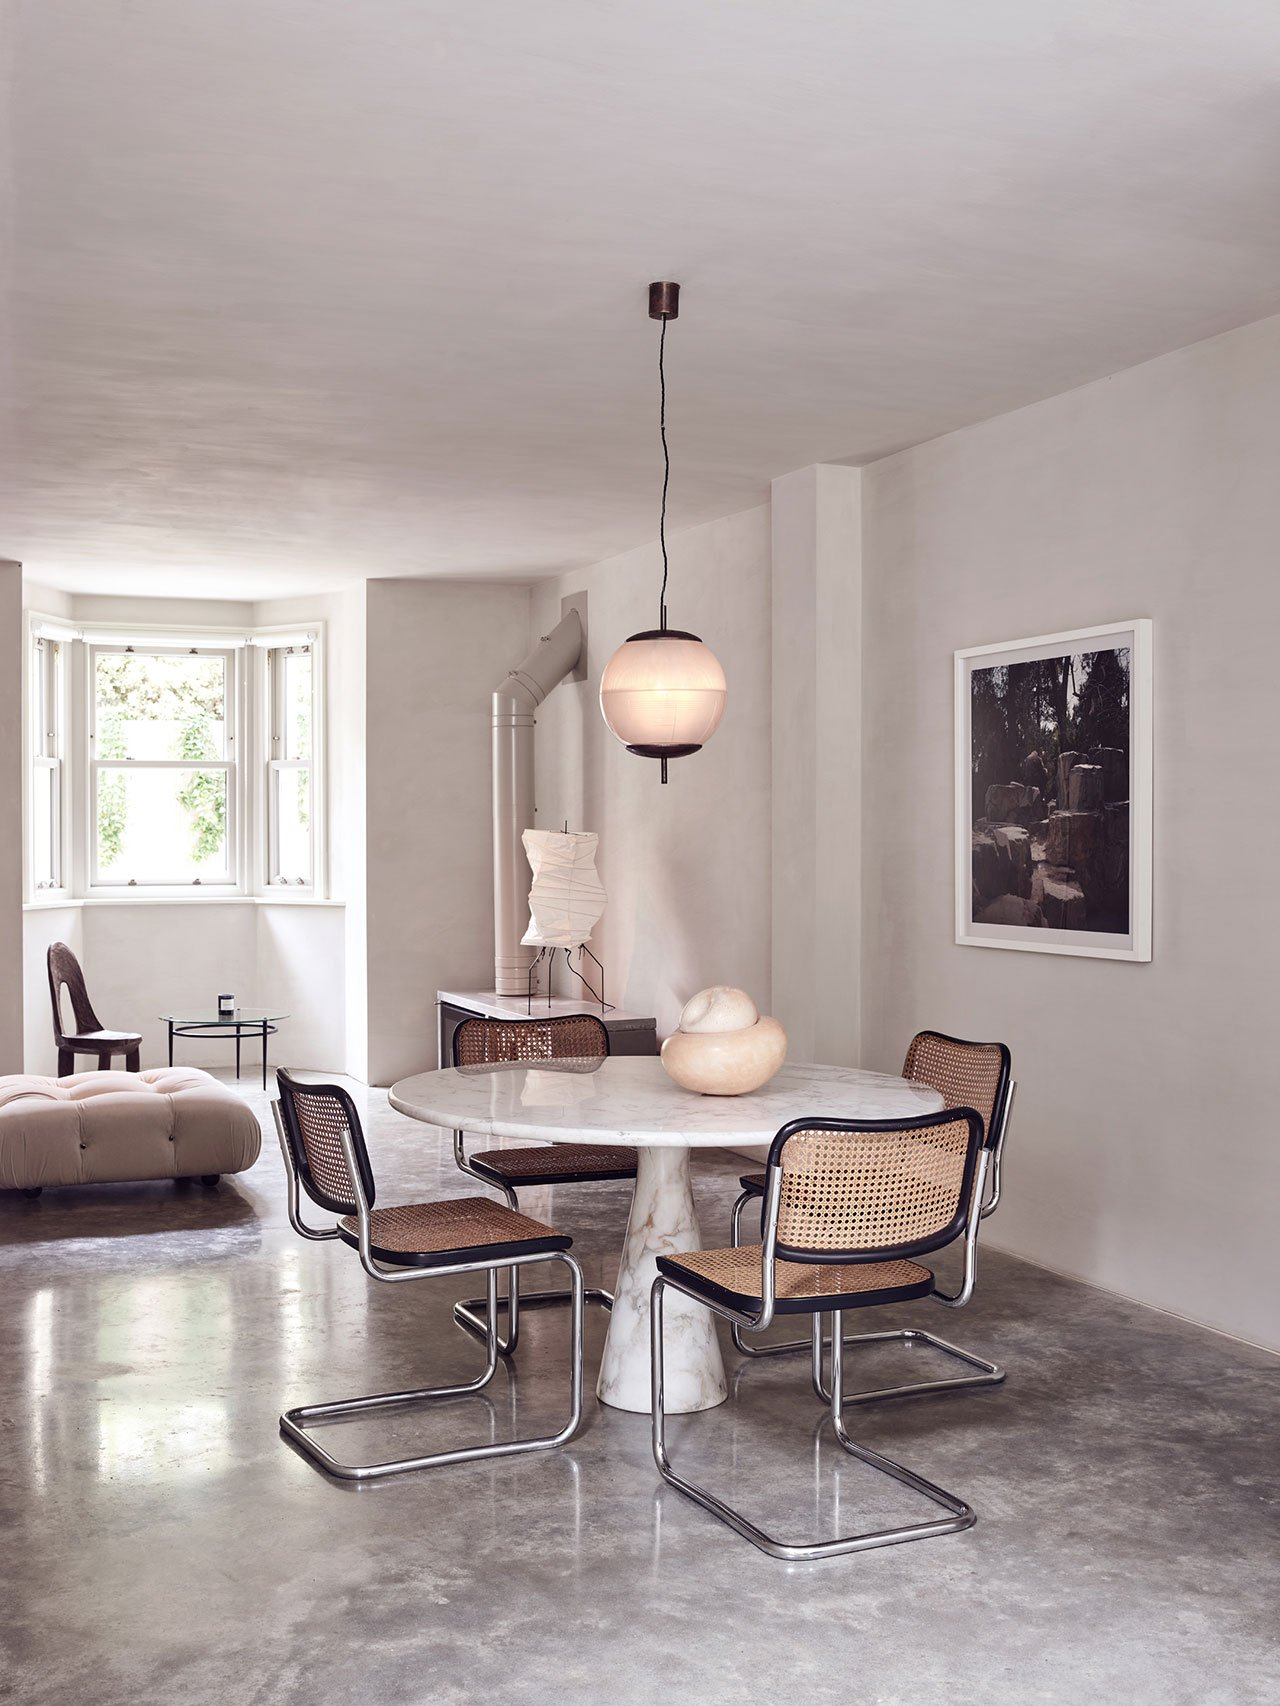 The dining space is done with a marble table and wicker chairs, there's a chic lamp